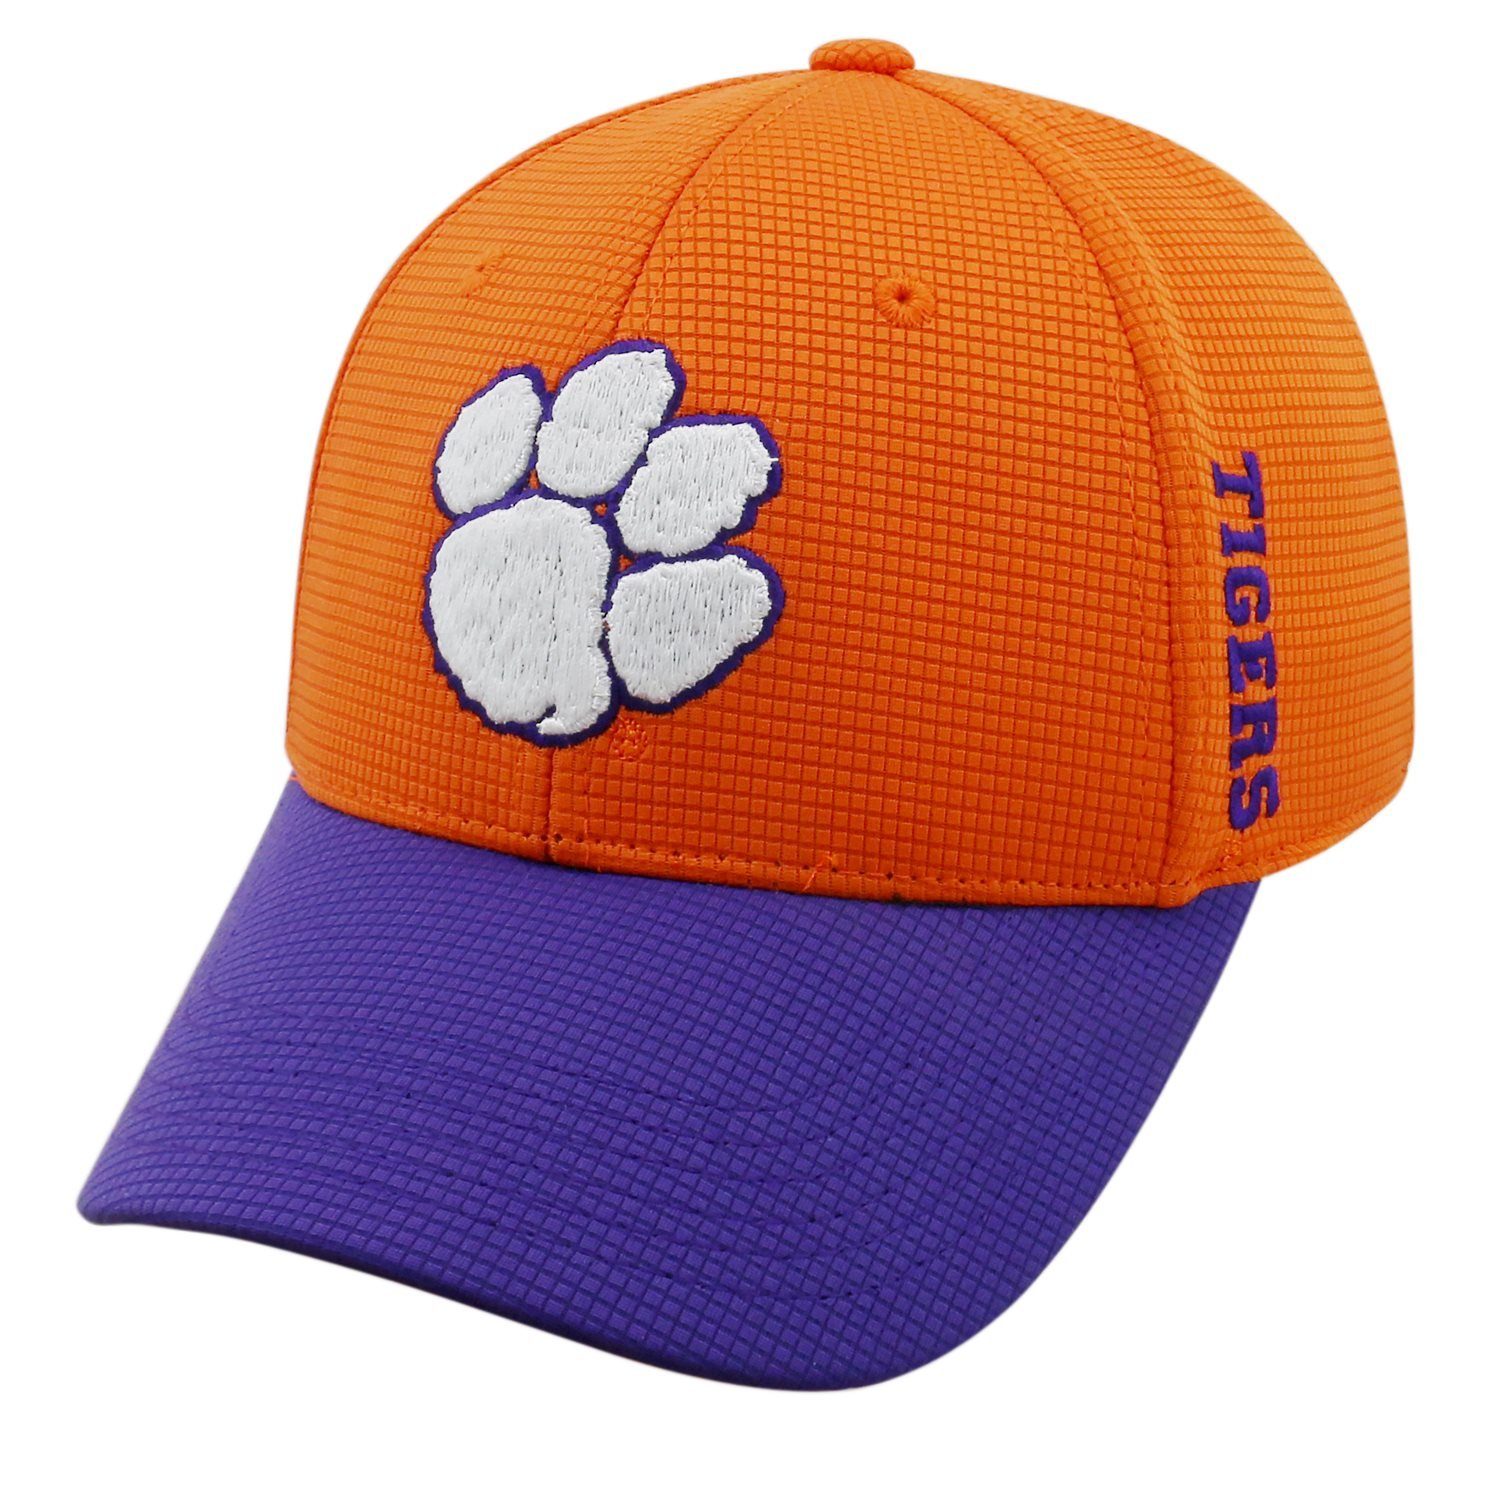 check out e363a 59921 Amazon.com   Clemson Tigers 2 Tone Booster Plus Flex Fit Hat Cap Sizes 7-7  7 8   Sports   Outdoors